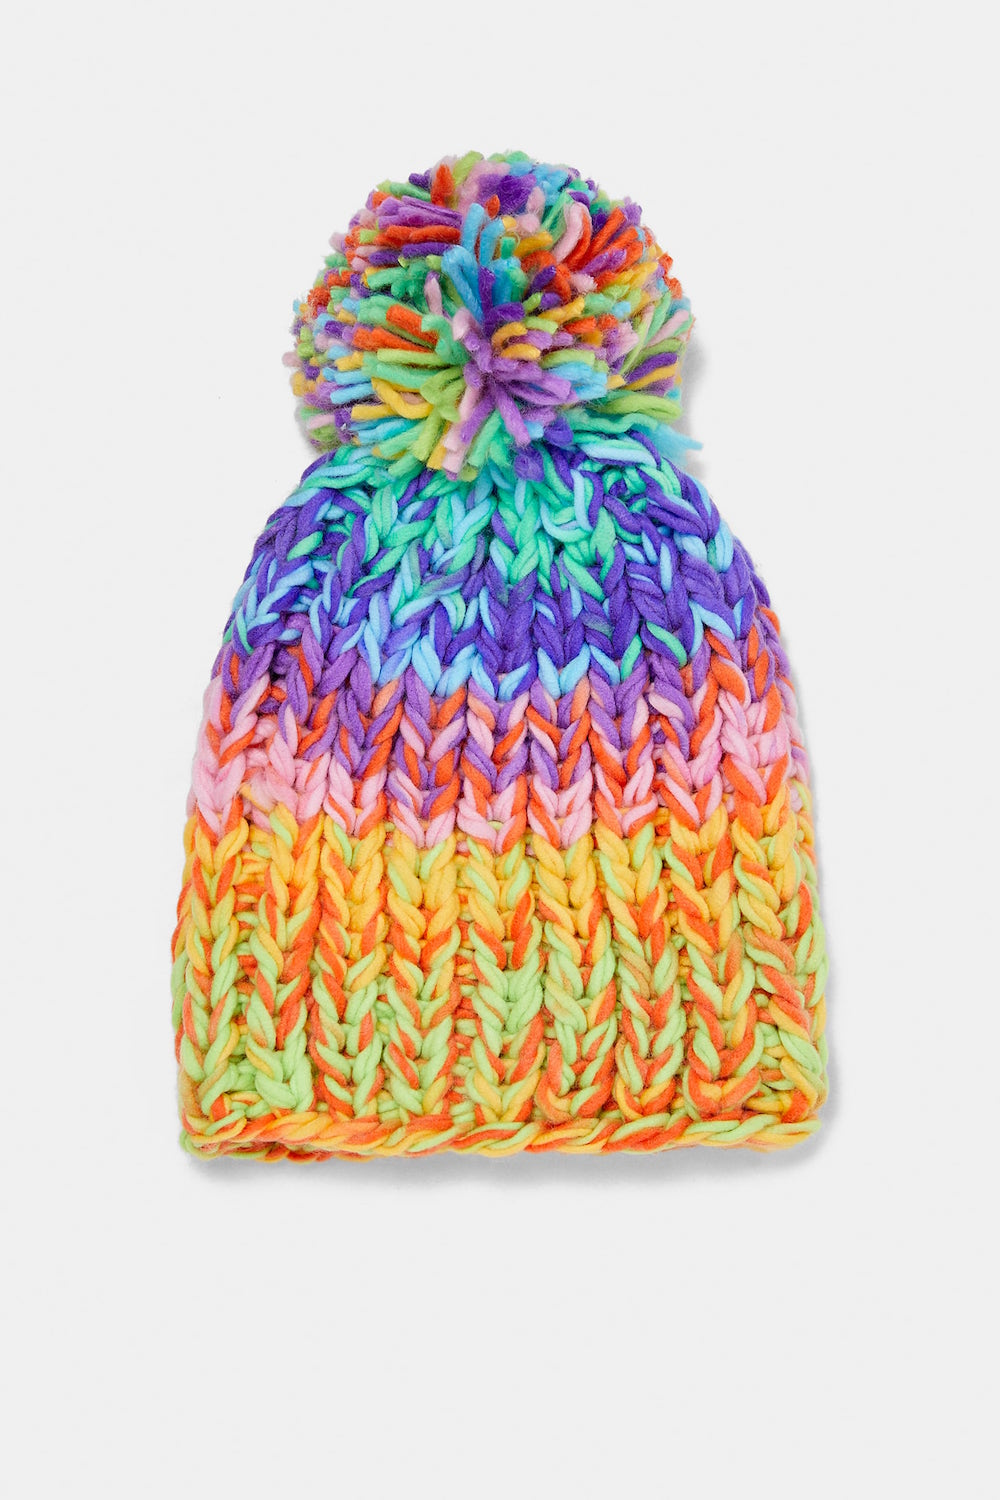 615af879 33 Winter Accessories Fashion Girls Will Love - theFashionSpot